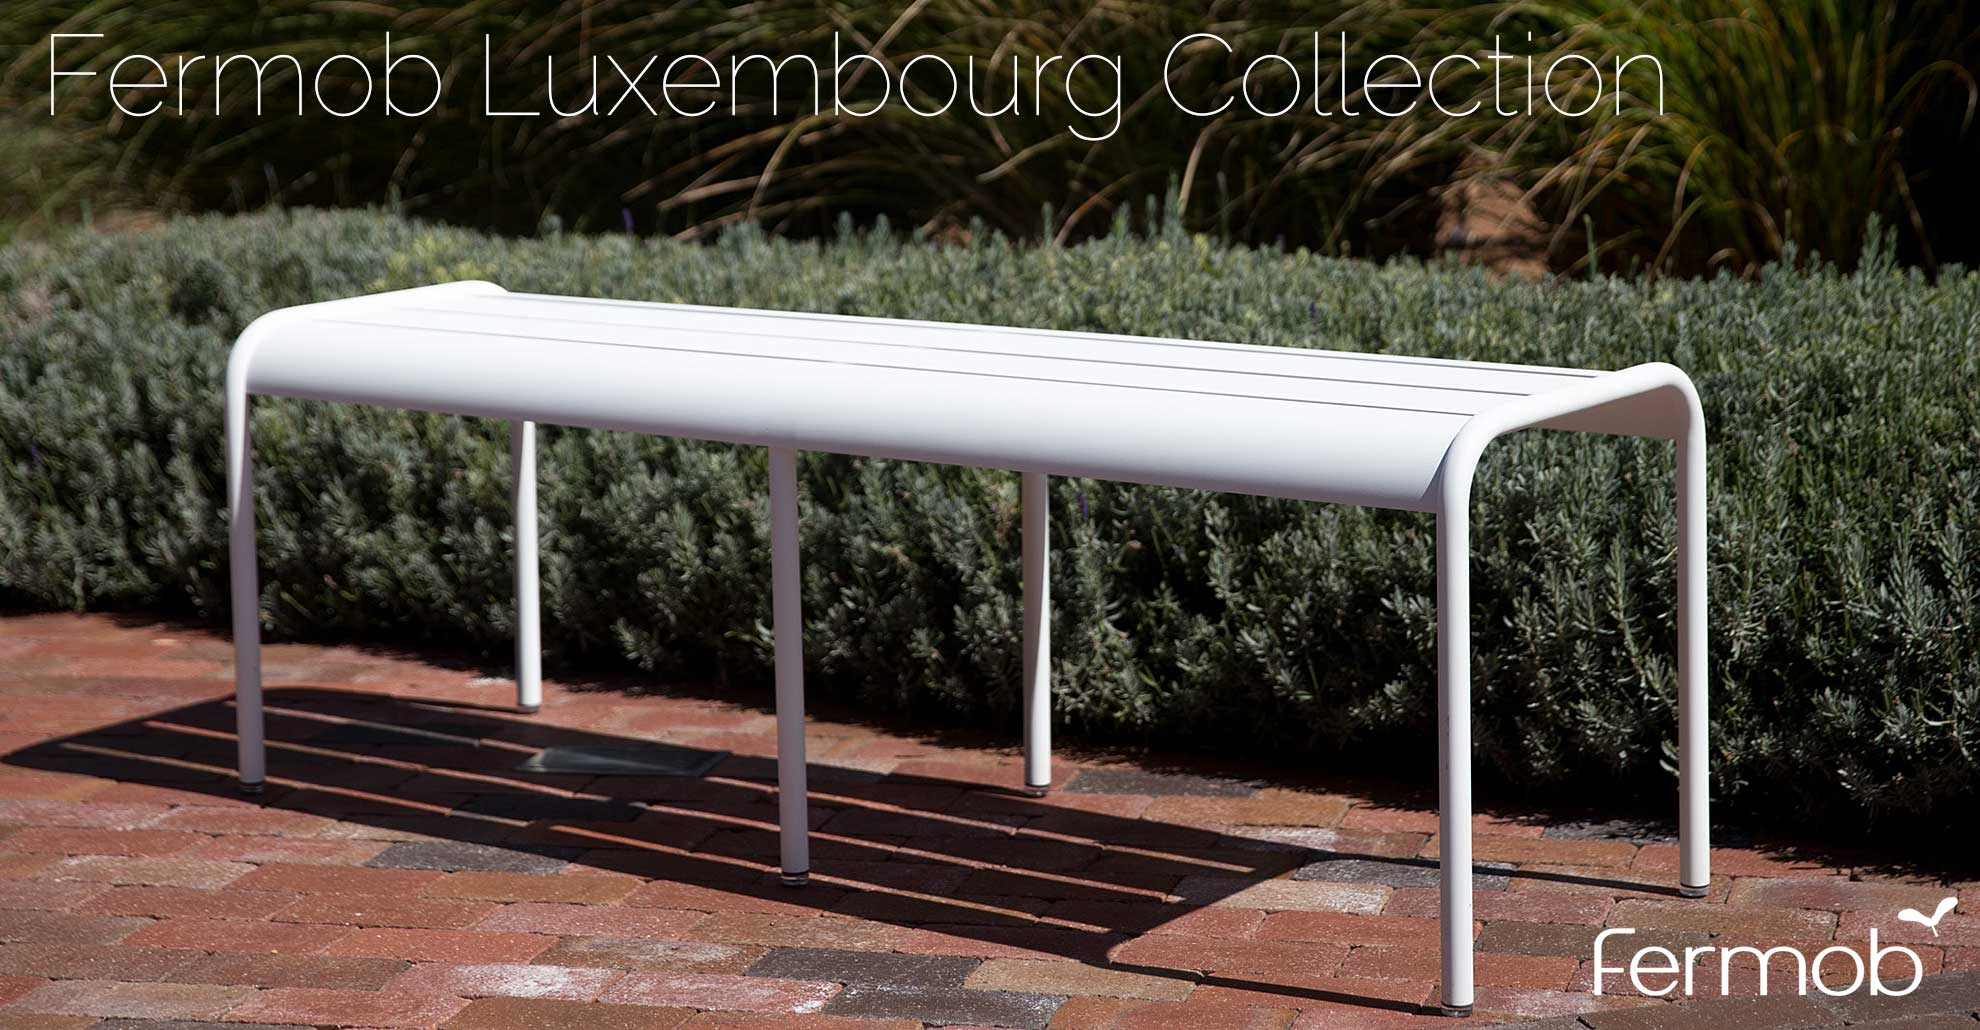 Fermob Luxembourg Collection